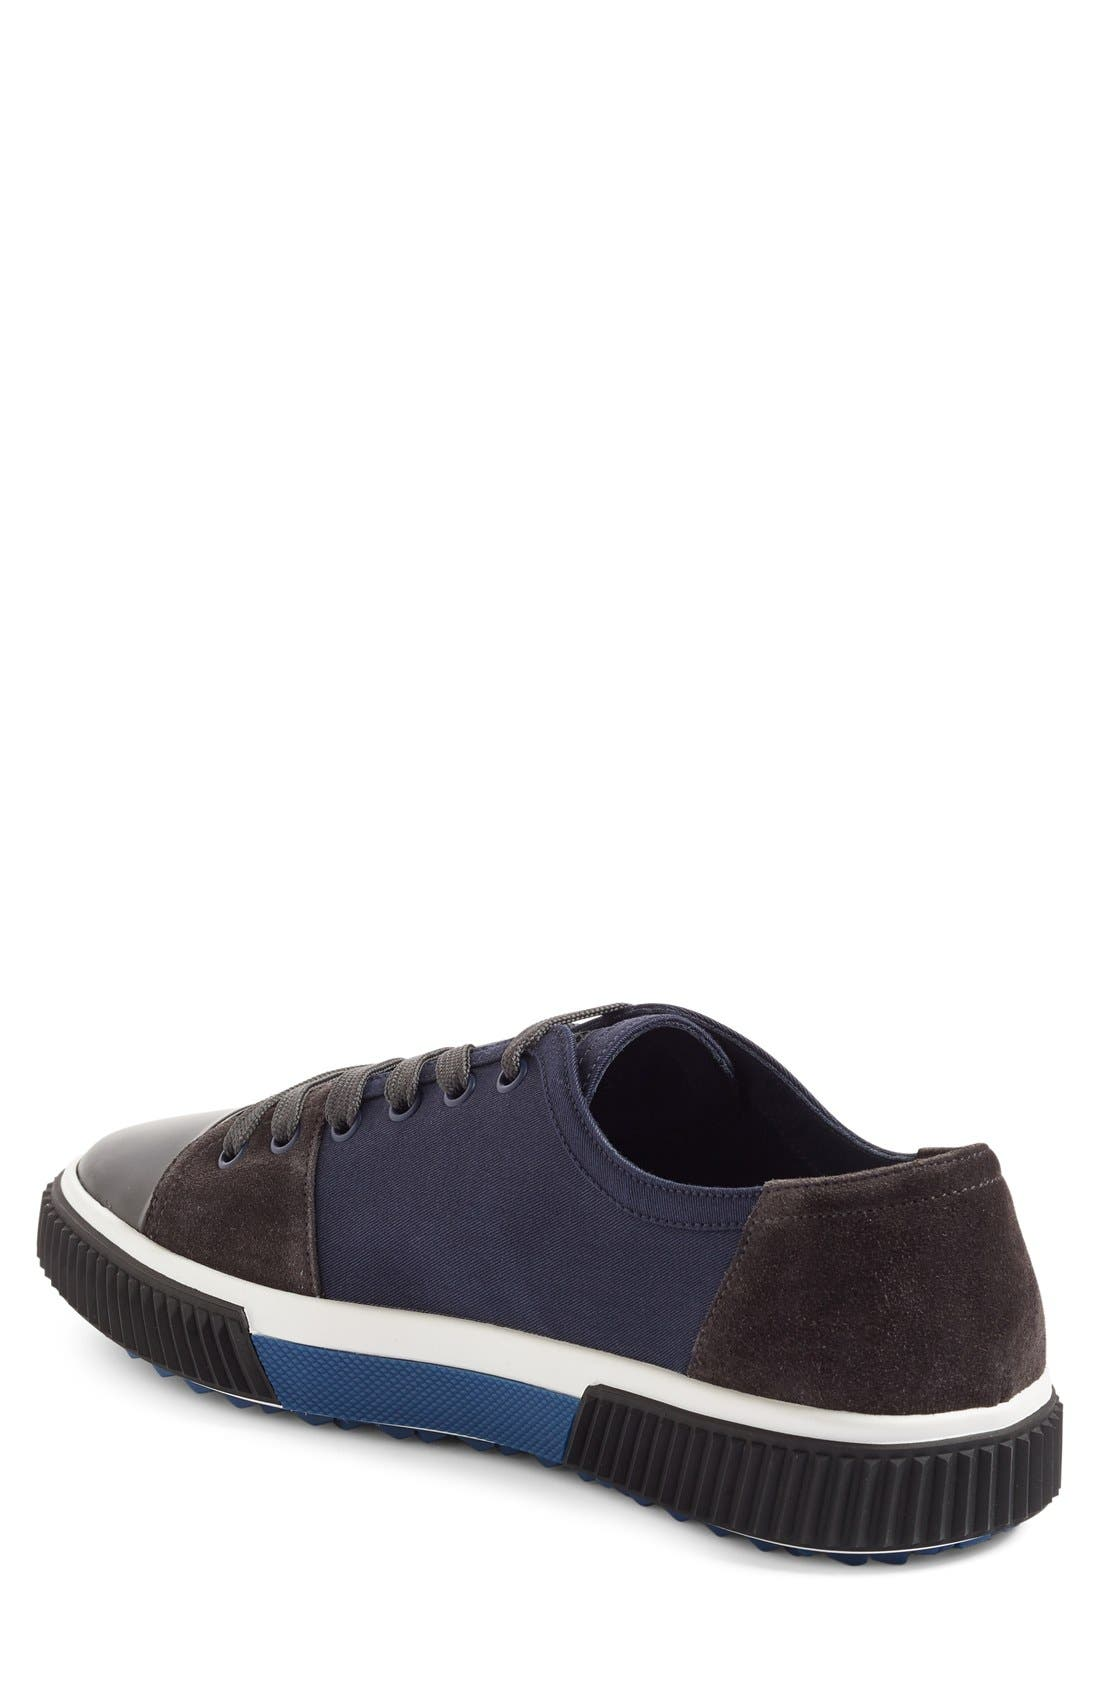 Linea Rossa Sneaker,                             Alternate thumbnail 2, color,                             Blue Fabric